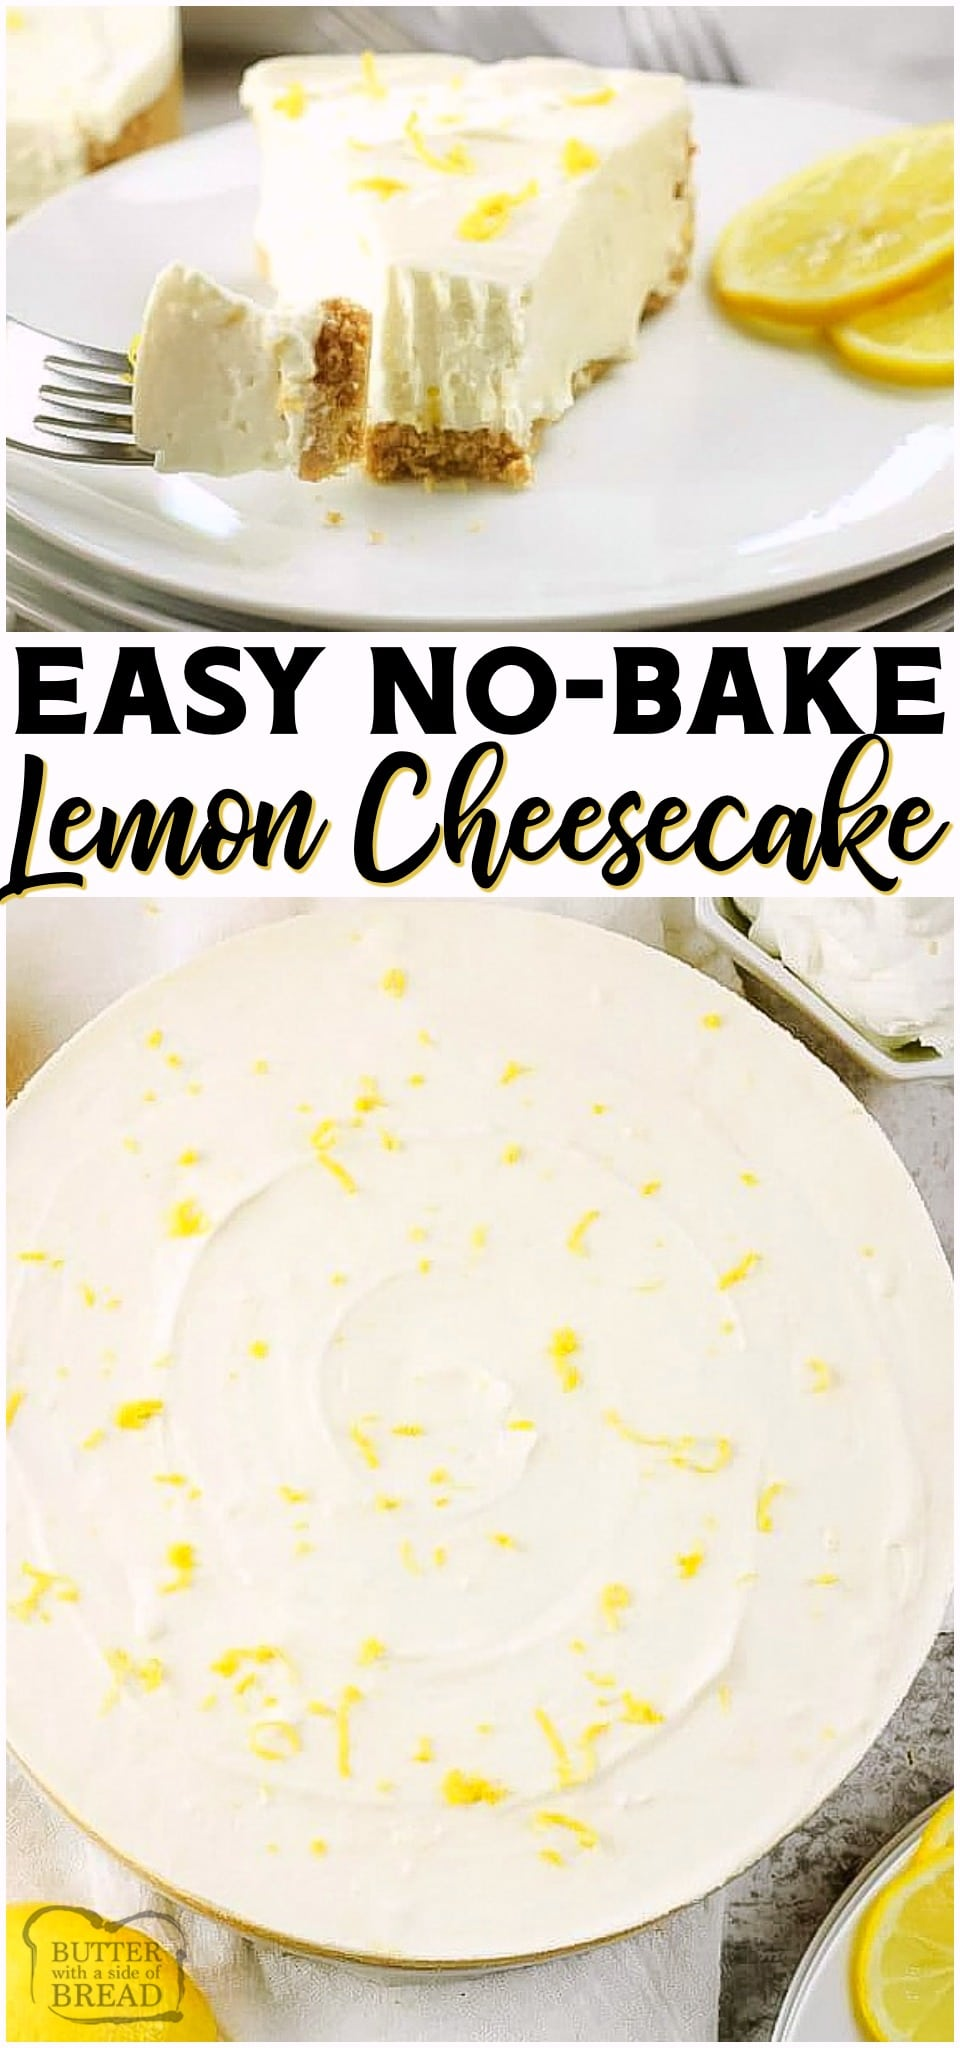 No Bake Lemon Cheesecake is a simple no bake dessert with only a few ingredients! Easy Lemon Cheesecake recipe with bright, fresh lemon flavor in a creamy no-bake cheesecake.